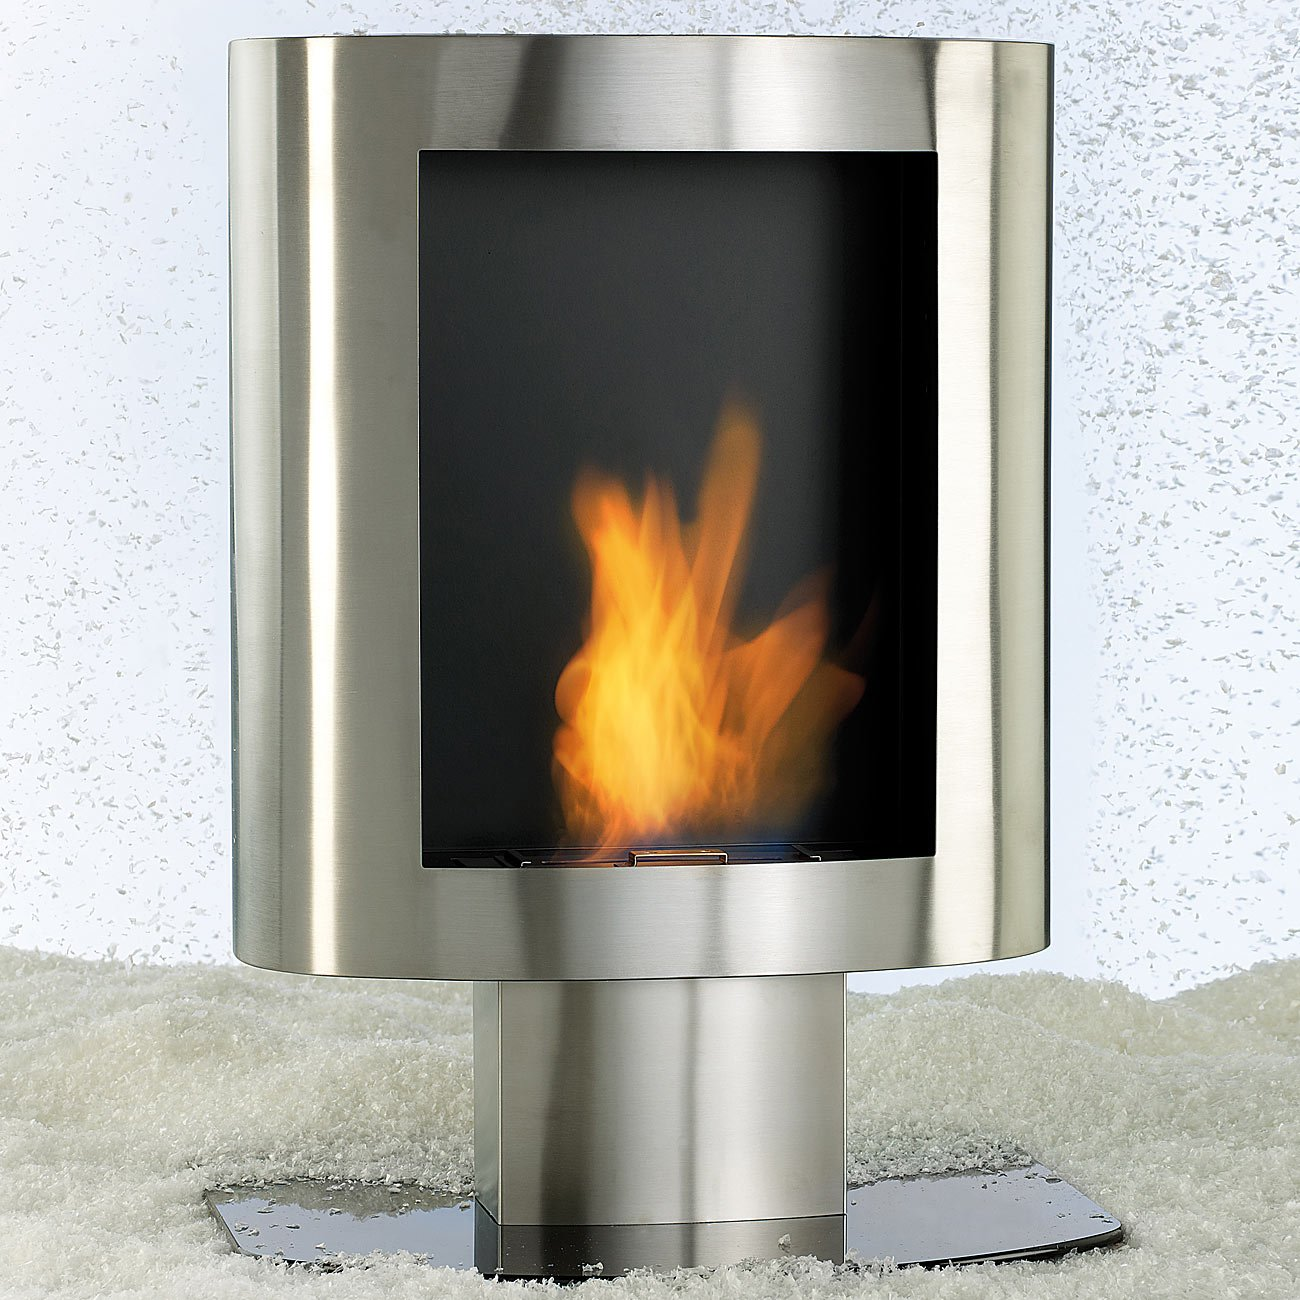 Awesome Carlo Milano Decorative Stove Bio Ethanol Stainless Steel For Wall And  Floor: Amazon.co.uk: Kitchen U0026 Home